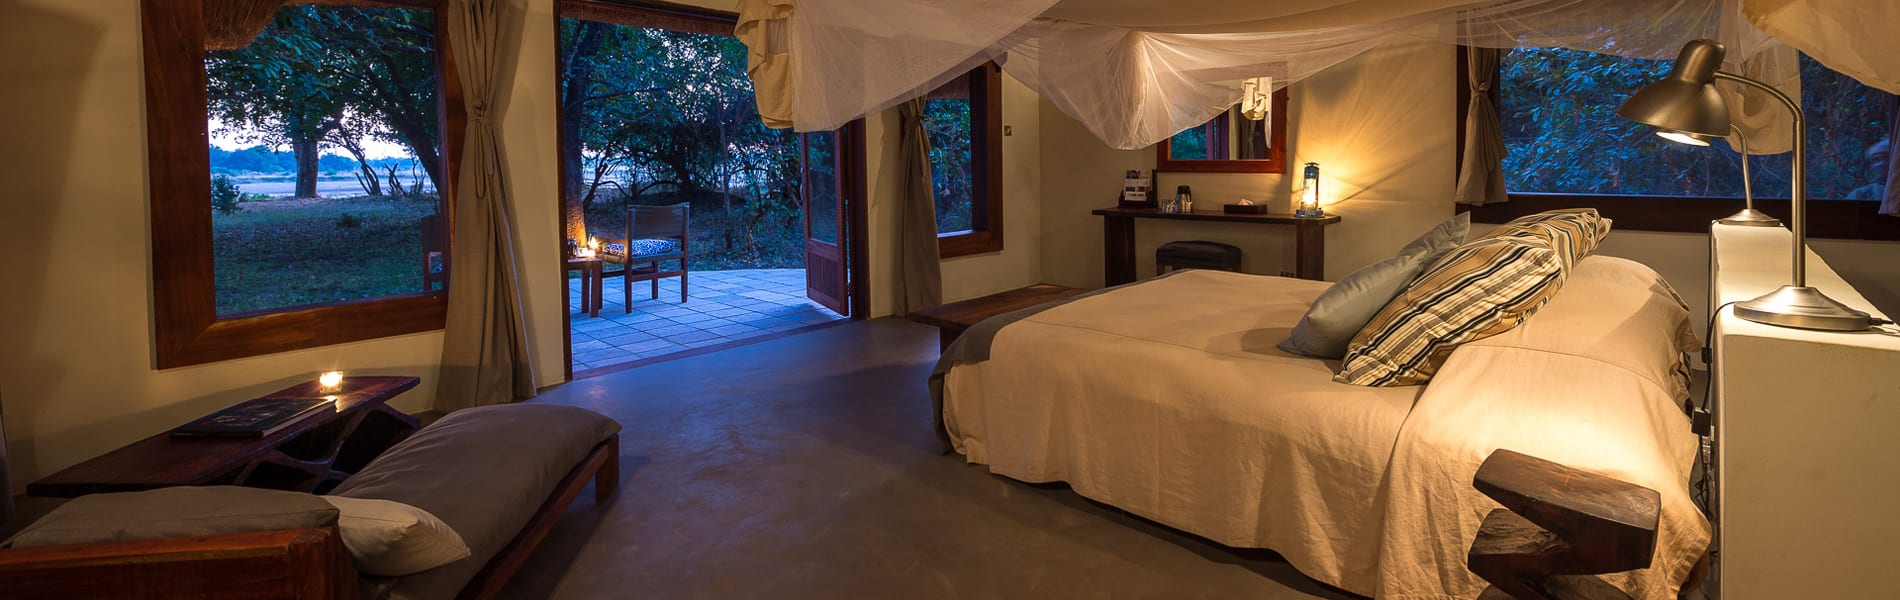 Luangwa River Camp room